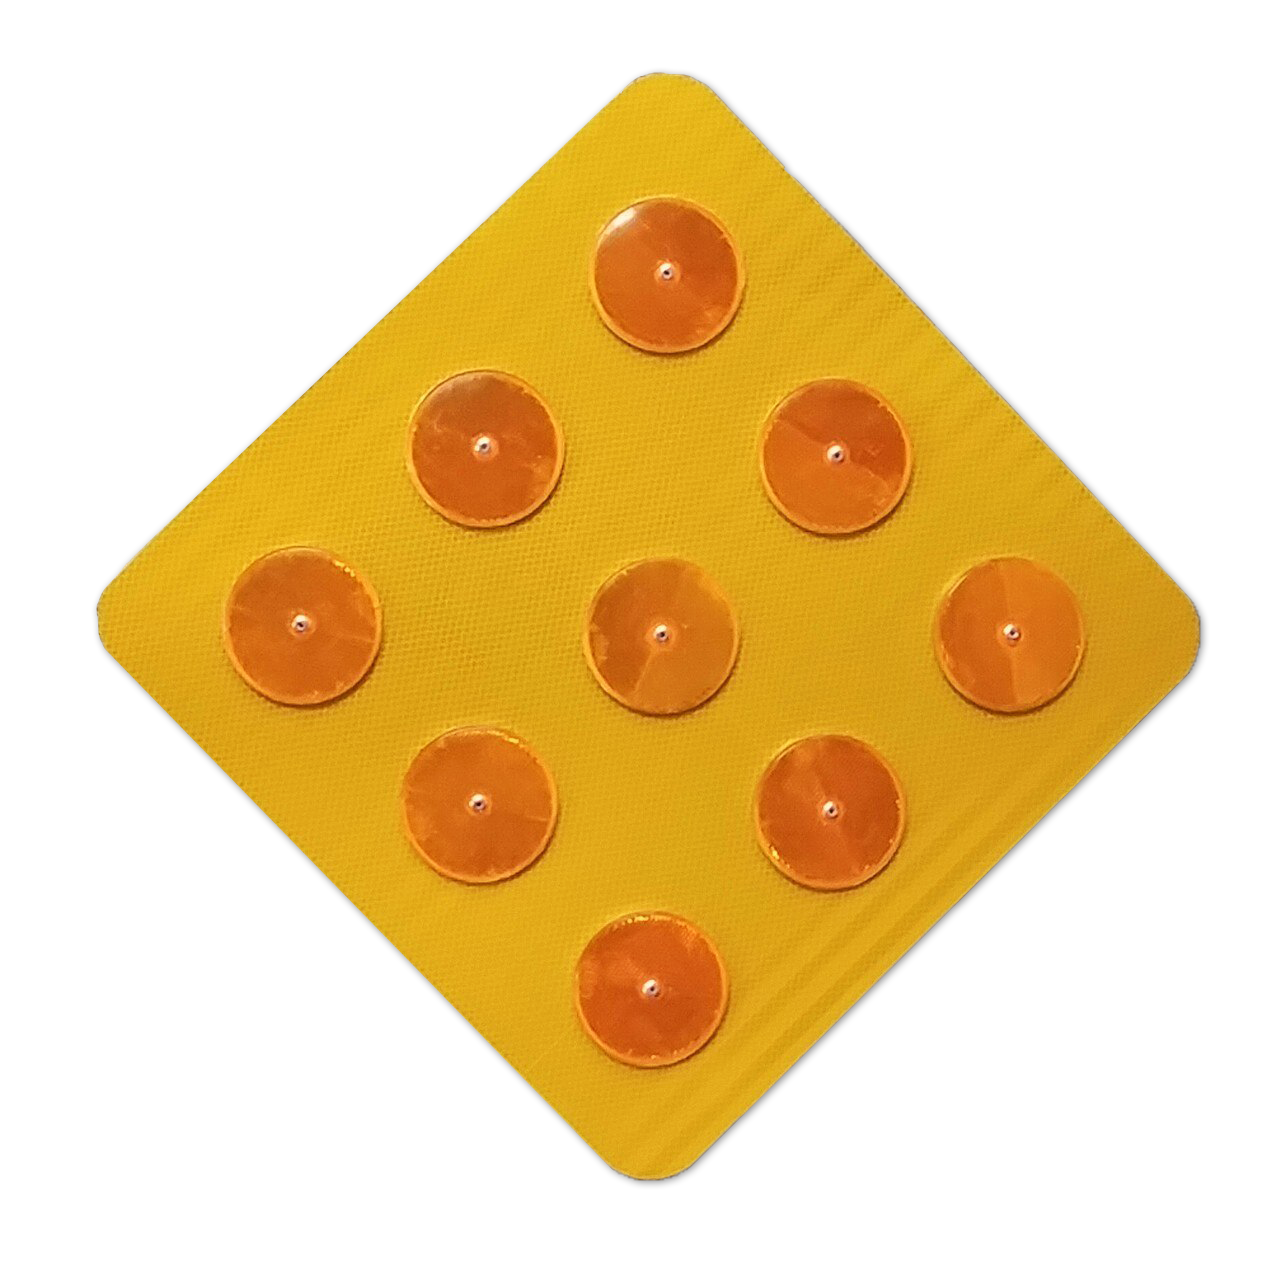 x12 Stickers Safe-Tee Reflective YELLOW CIRCLE